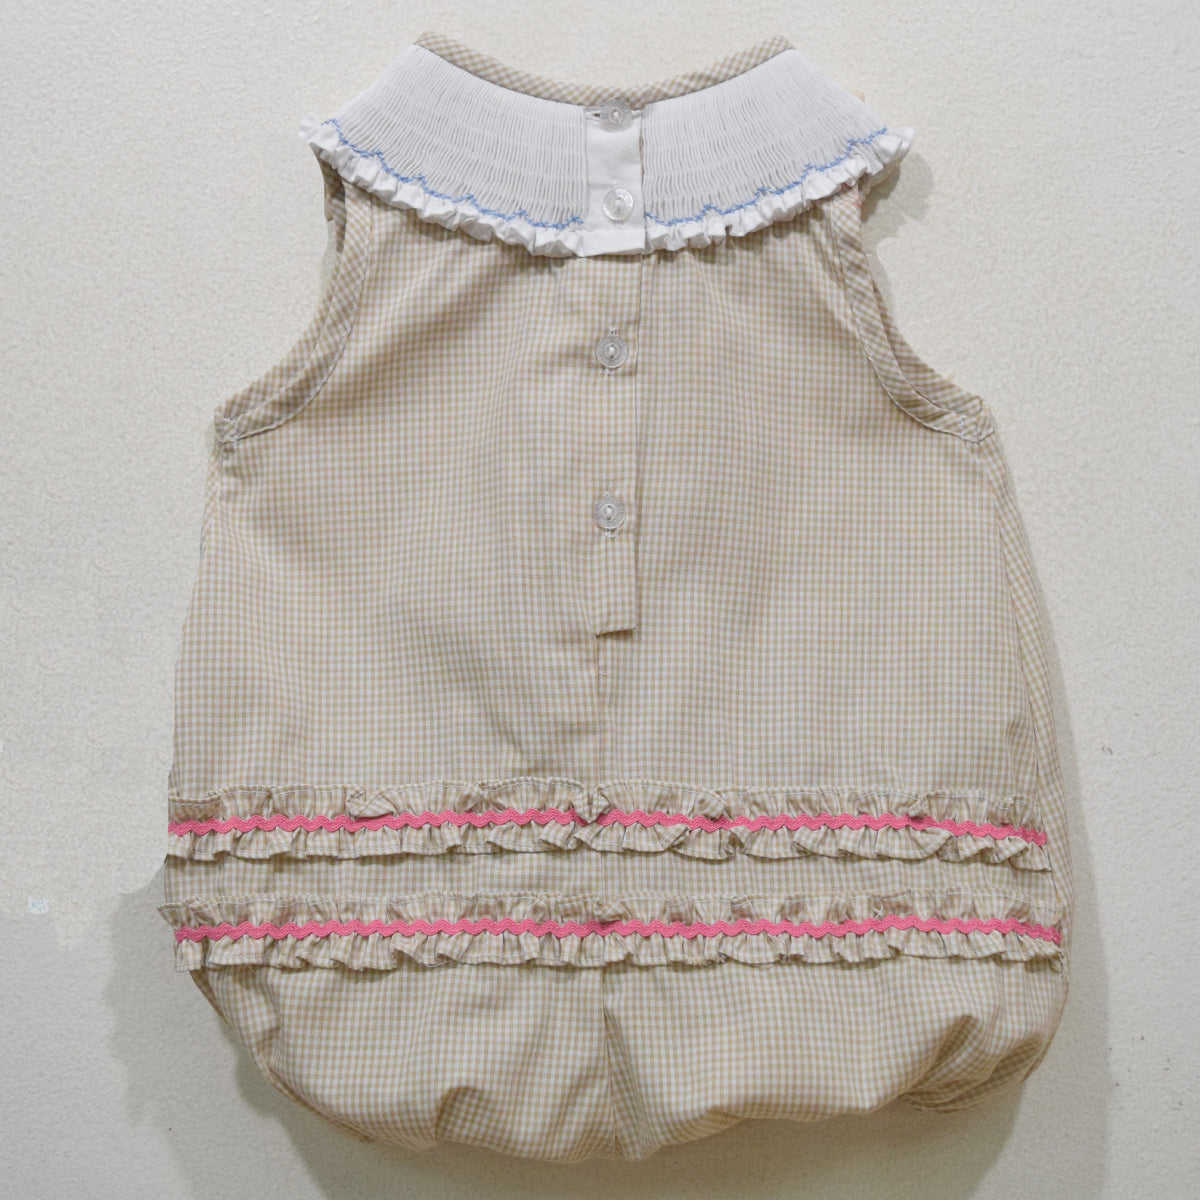 Seashells Smocked Beige Mini Check Girls Bubble Bishop With Insert - Vive La Fête - Online Apparel Store